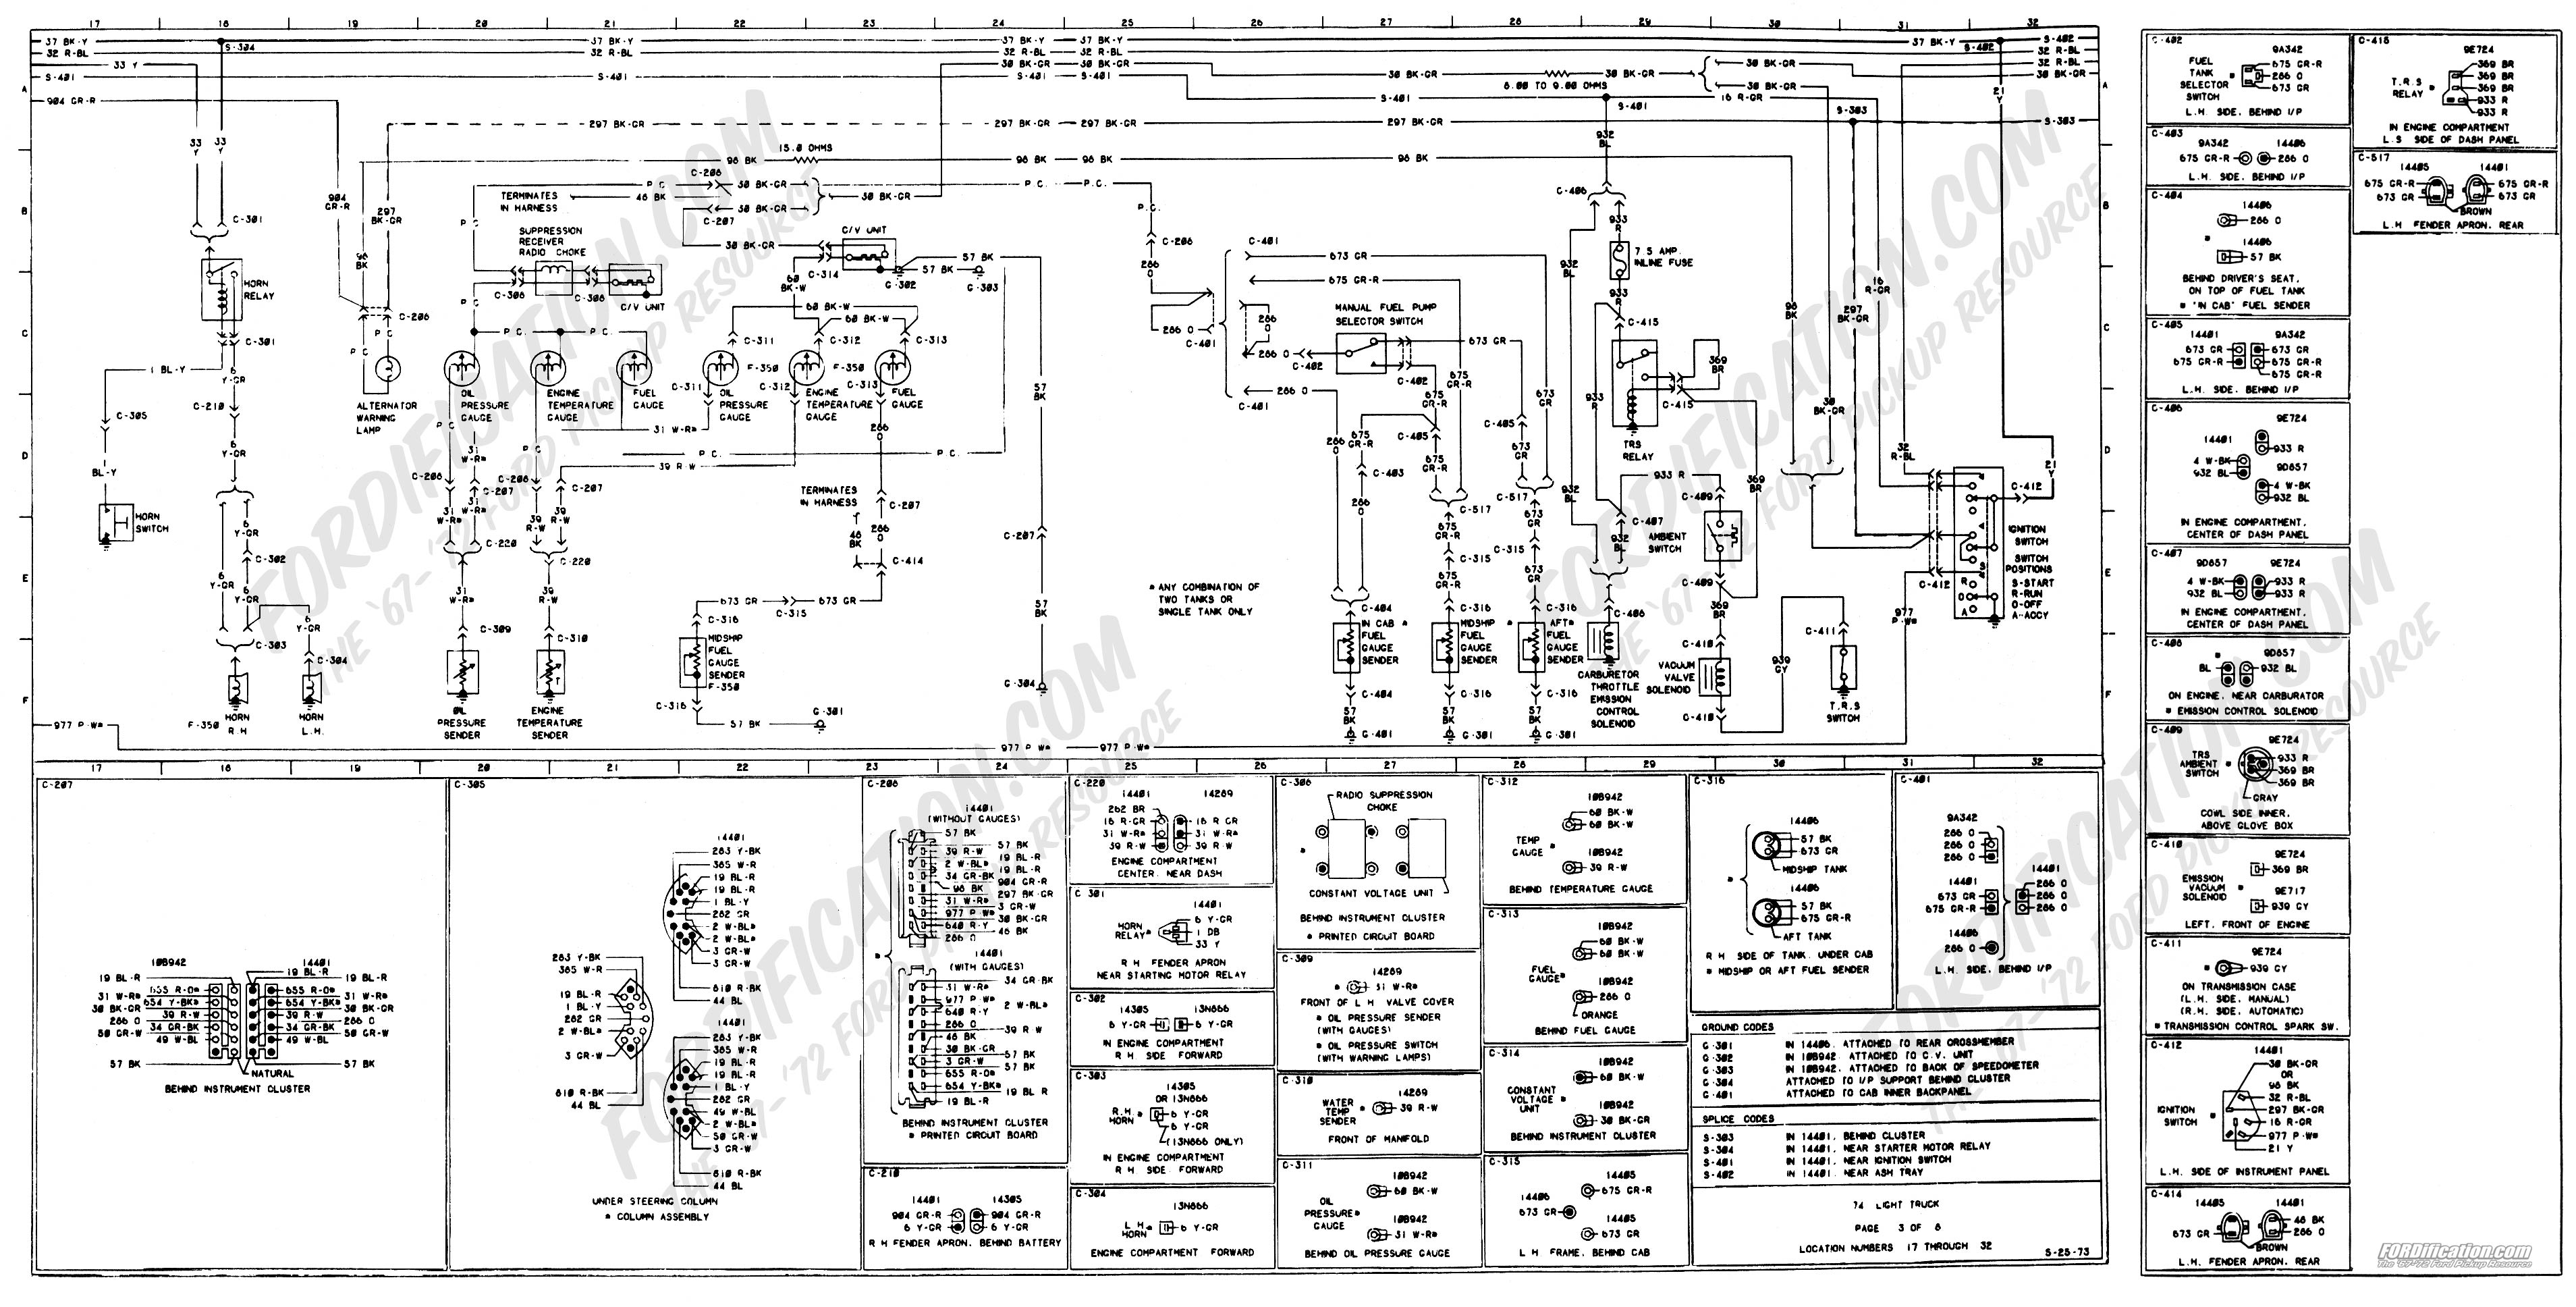 wiring_74master_3of8 1973 1979 ford truck wiring diagrams & schematics fordification net 1979 Corvette Fuse Box Diagram at gsmportal.co